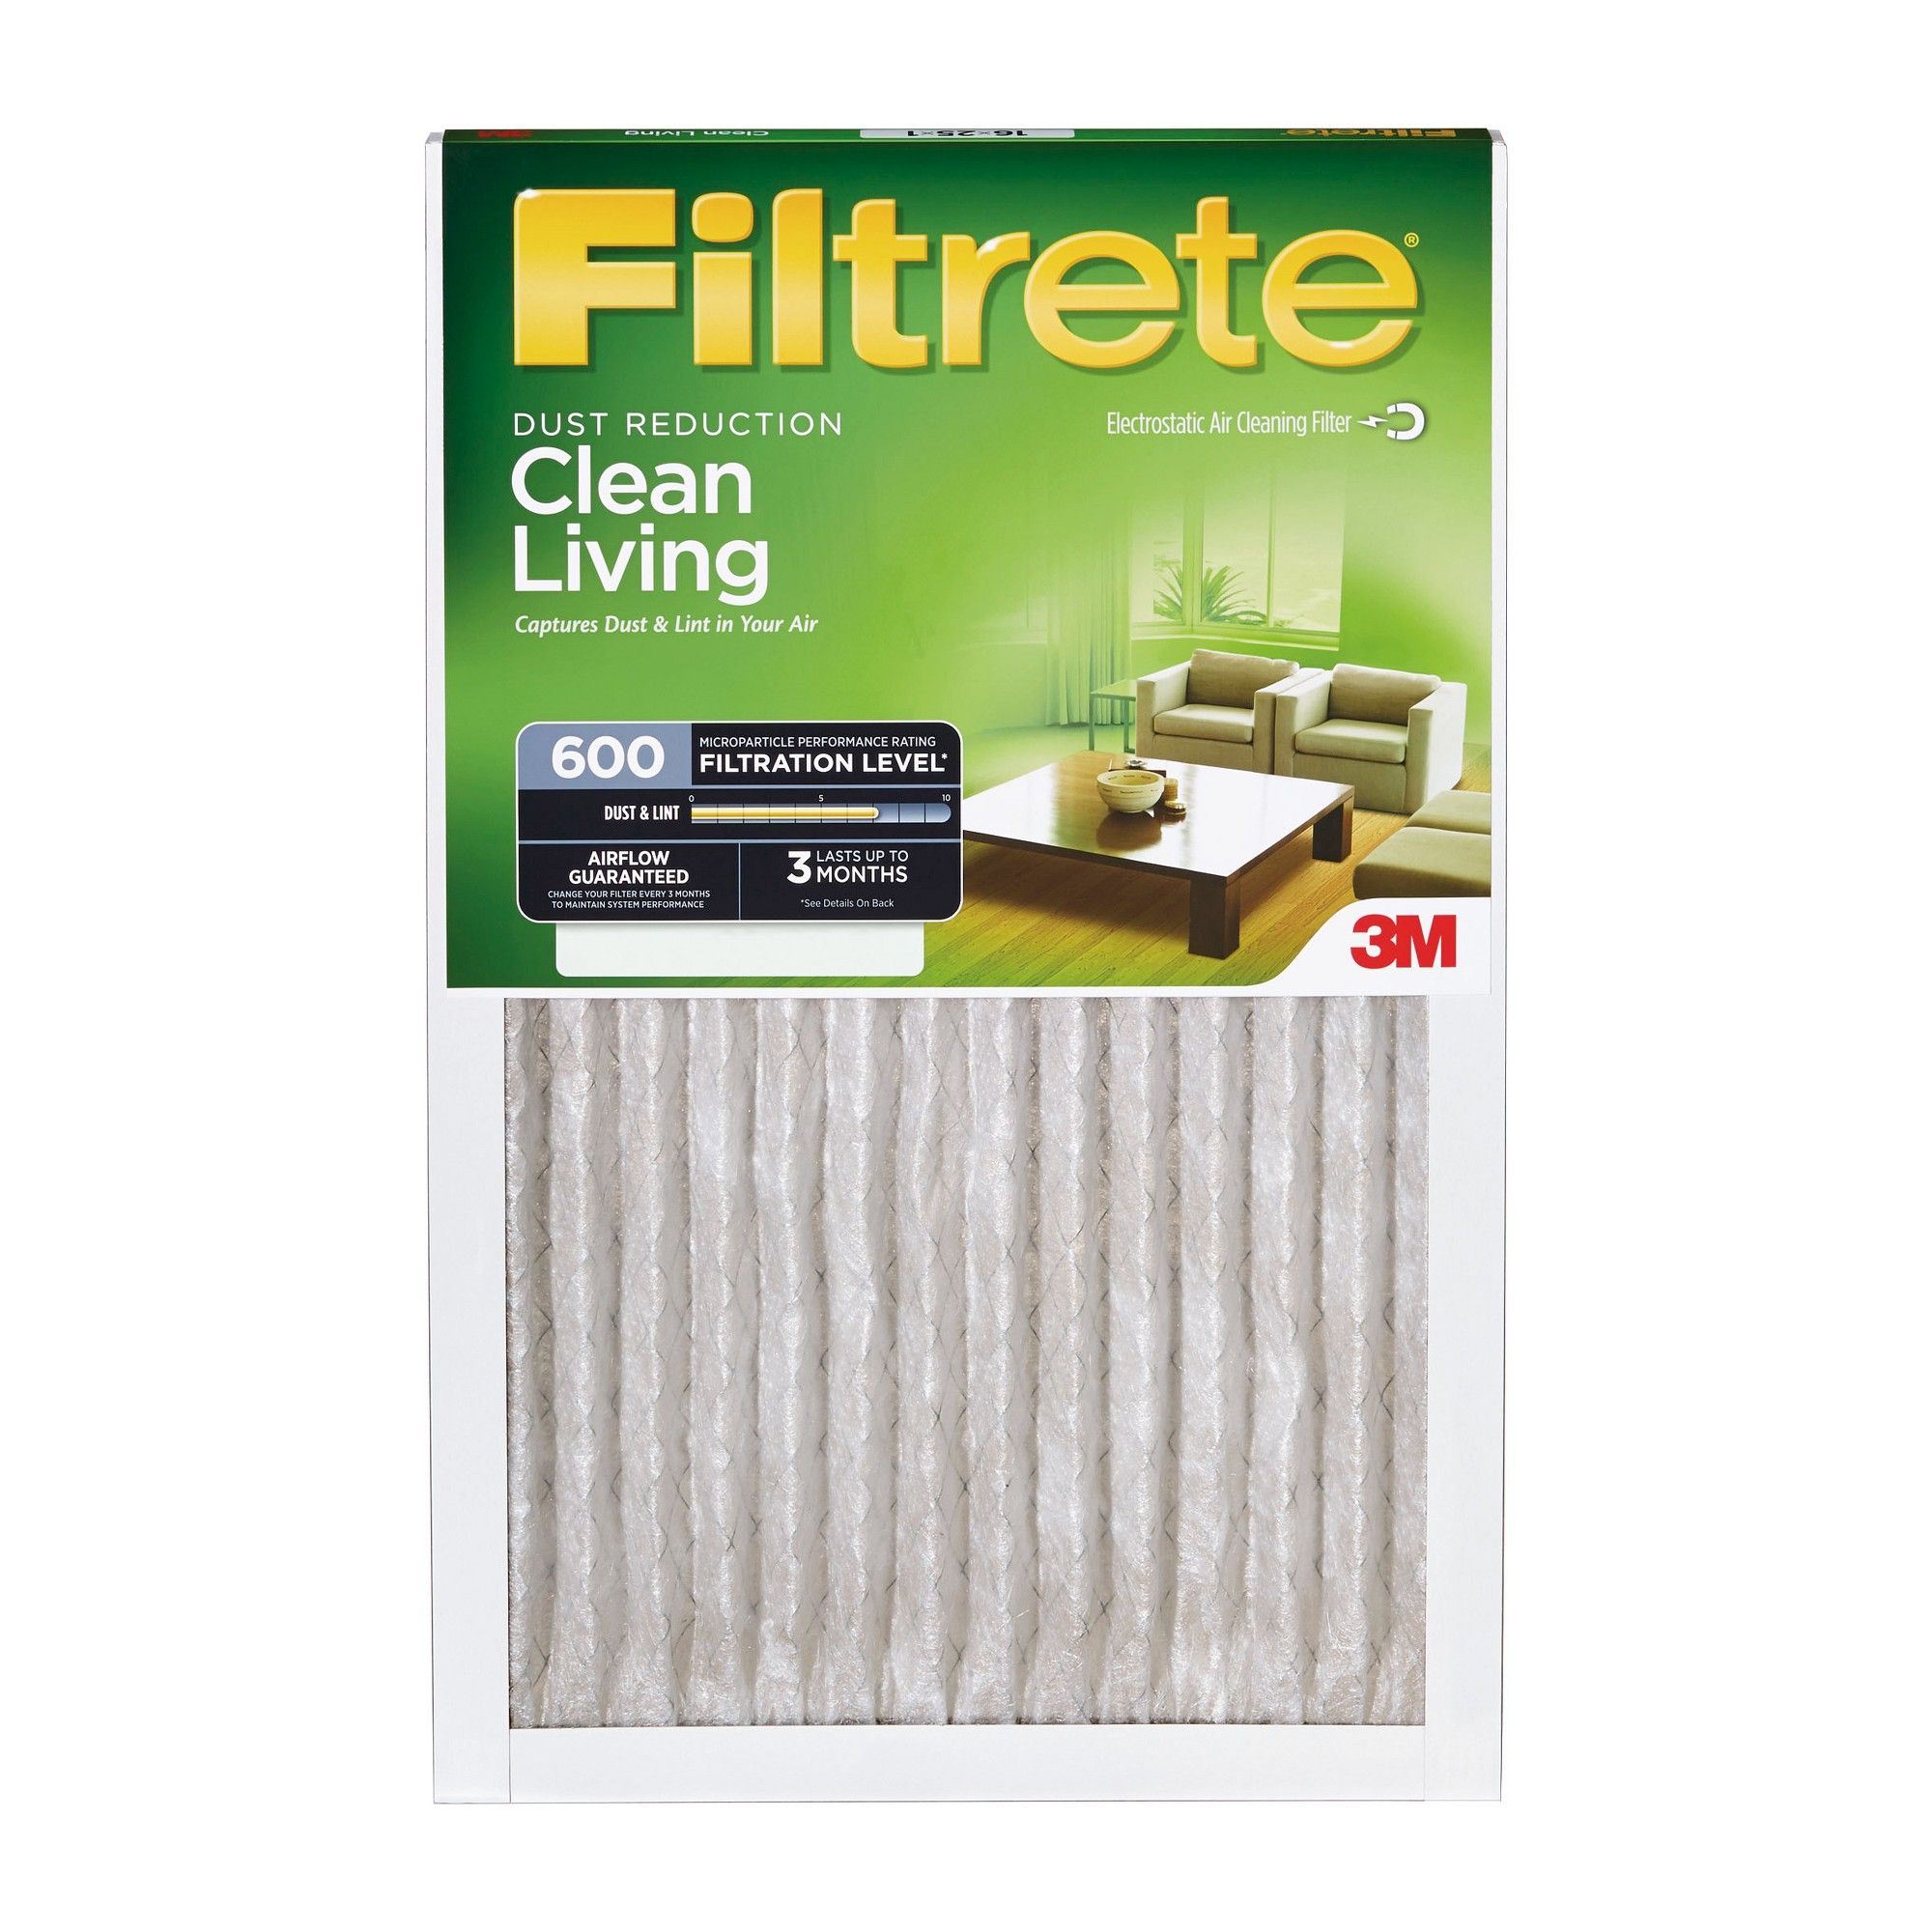 3M Filtrete 20x20x1 Dust Reduction Air Filter